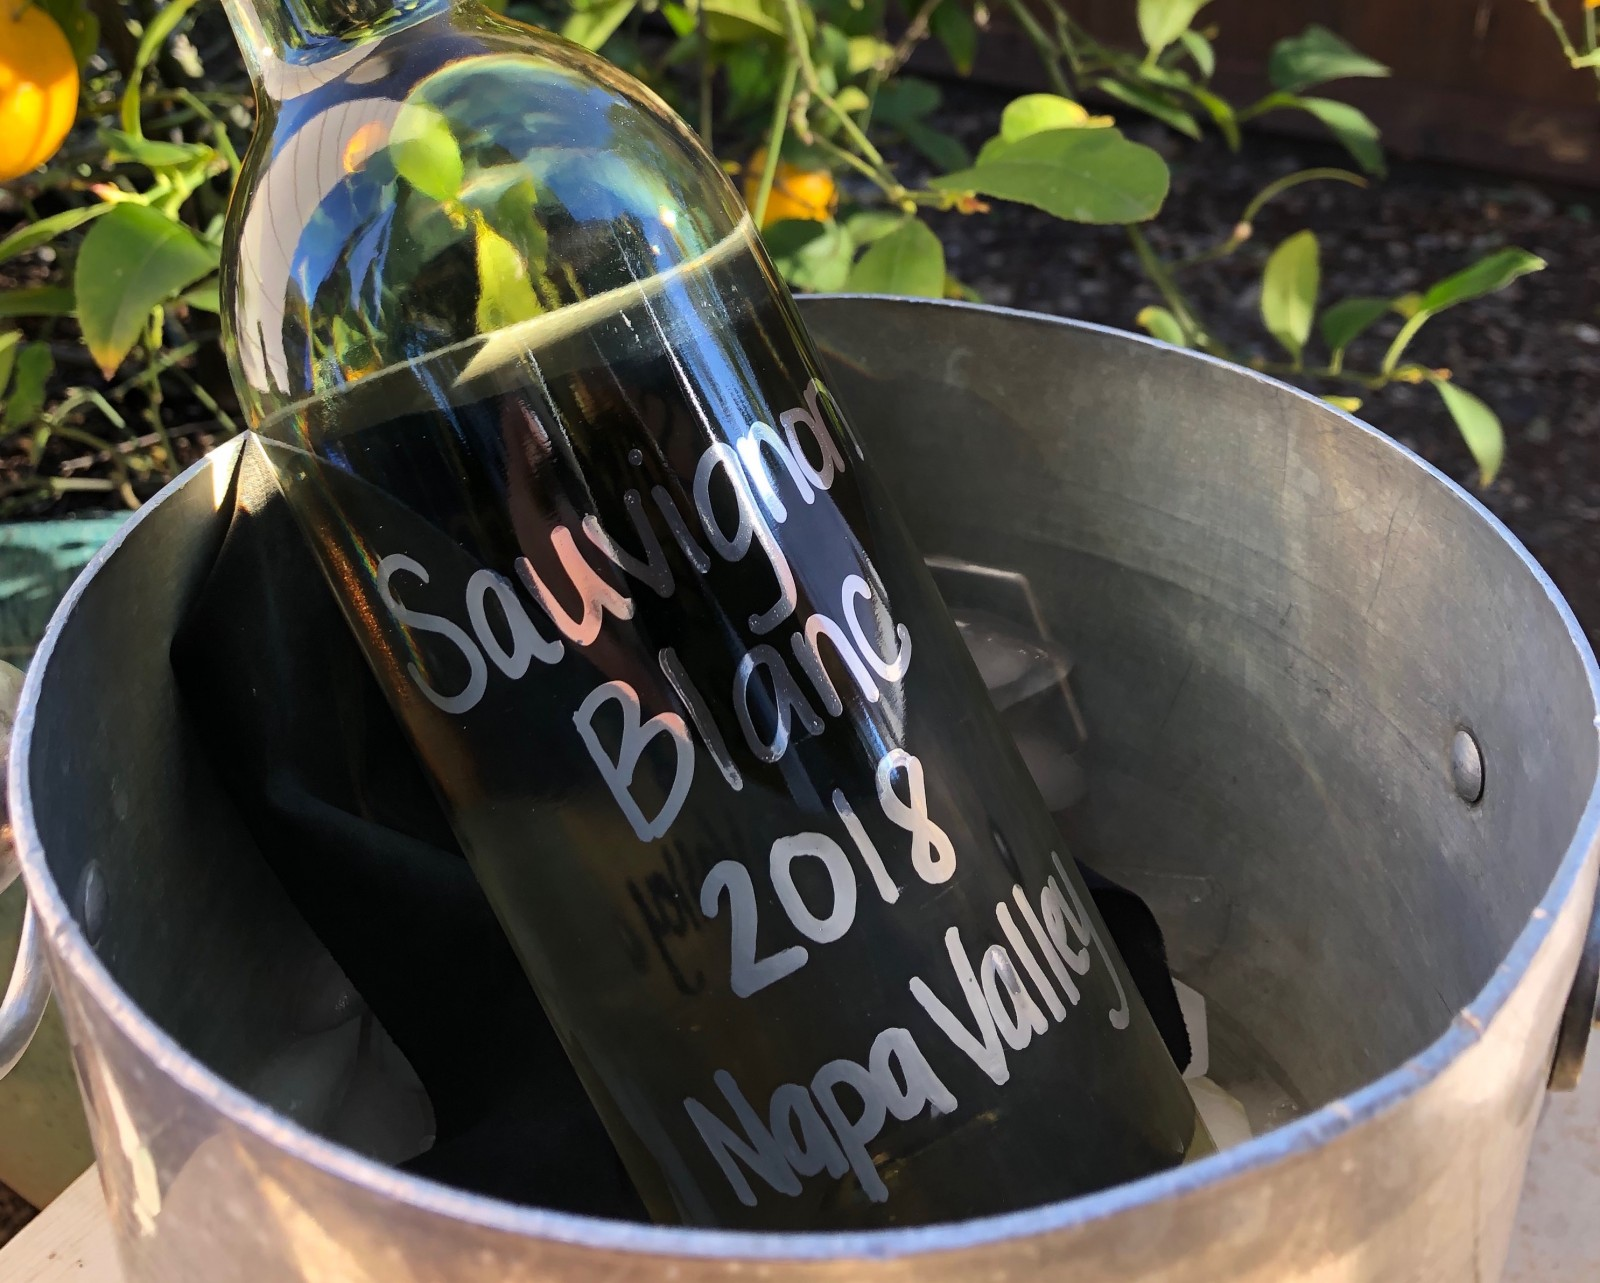 2018 Napa Valley Sauvignon Blanc - Sample Bottle 1 x 750ml Sample Bottle - Limit One Per Person, East Coast Offer - Art+Farm Wine